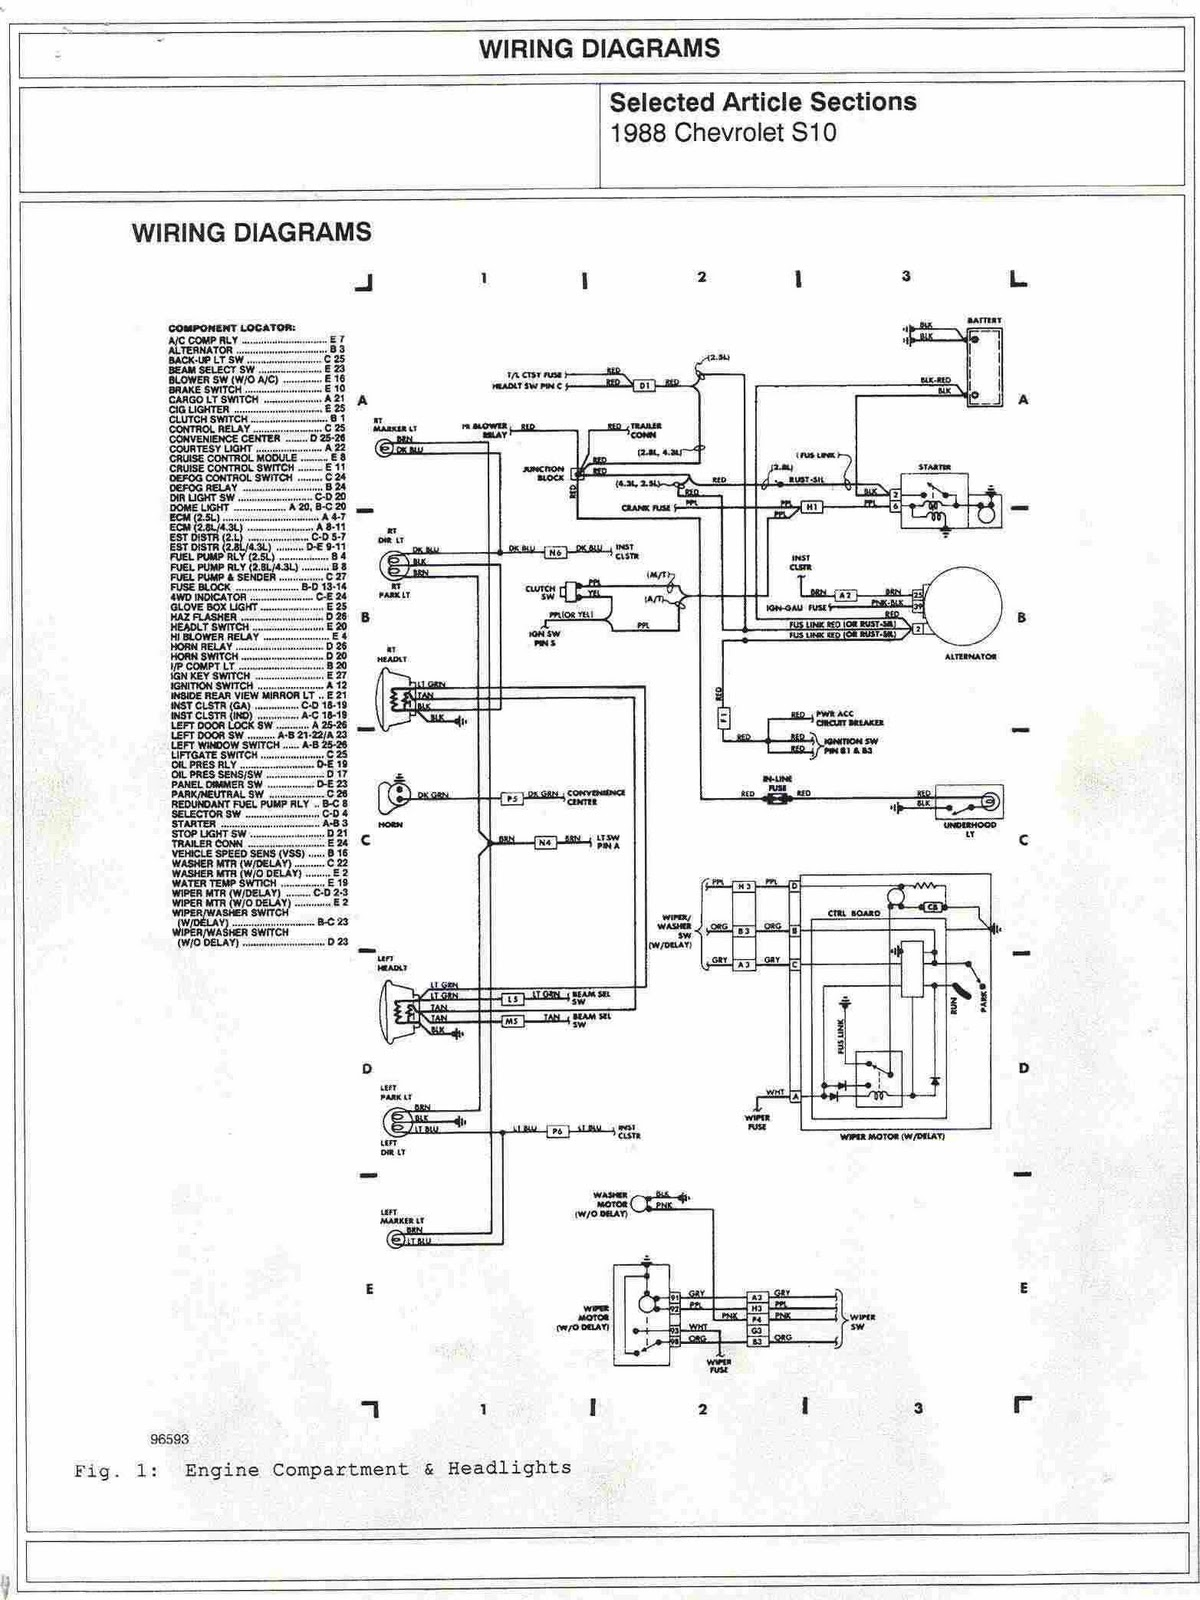 1988+Chevrolet+S10+Engine+Compartment+and+Headlights+Wiring+Diagrams 95 s10 wiring diagram 95 tahoe wiring diagram \u2022 wiring diagrams 2006 Dodge Ram Tail Light Wiring Diagram at aneh.co